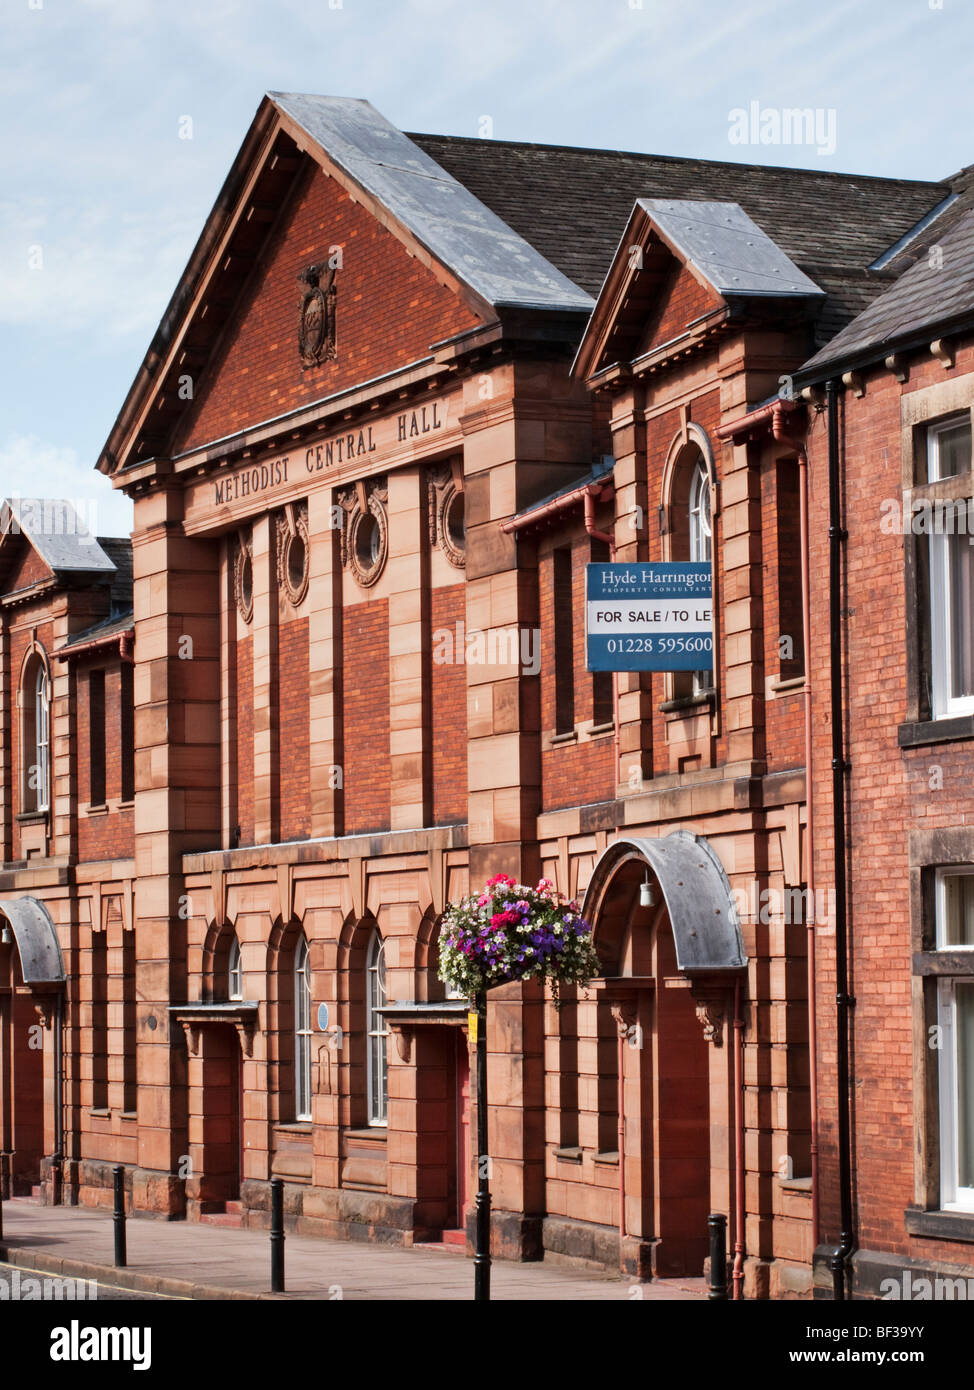 The Methodist Central Hall on Fisher Street in the Cumbrian town of Carlisle - Stock Image